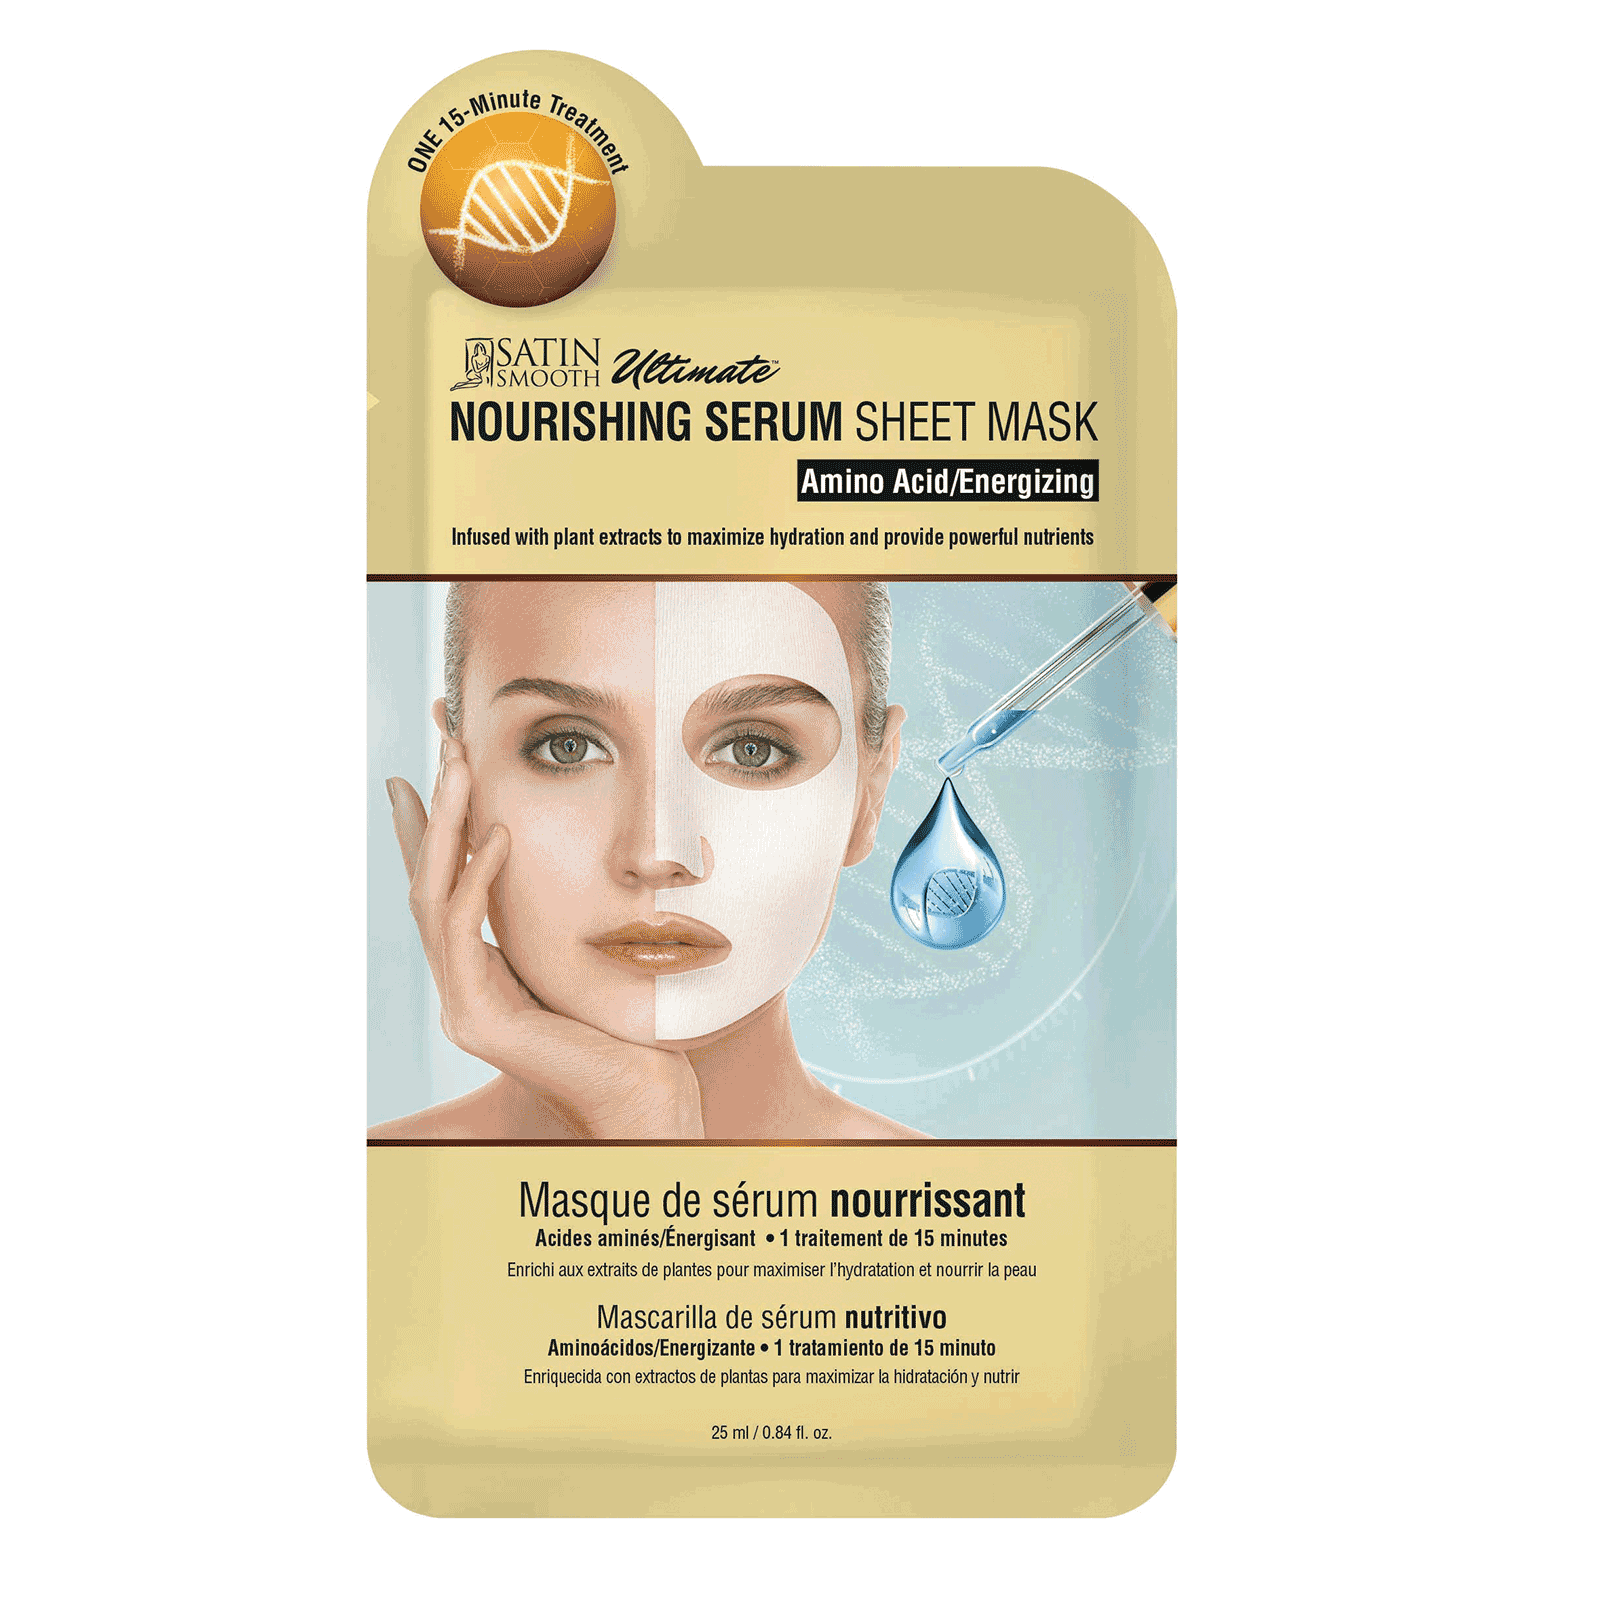 Nourishing Serum Sheet Mask